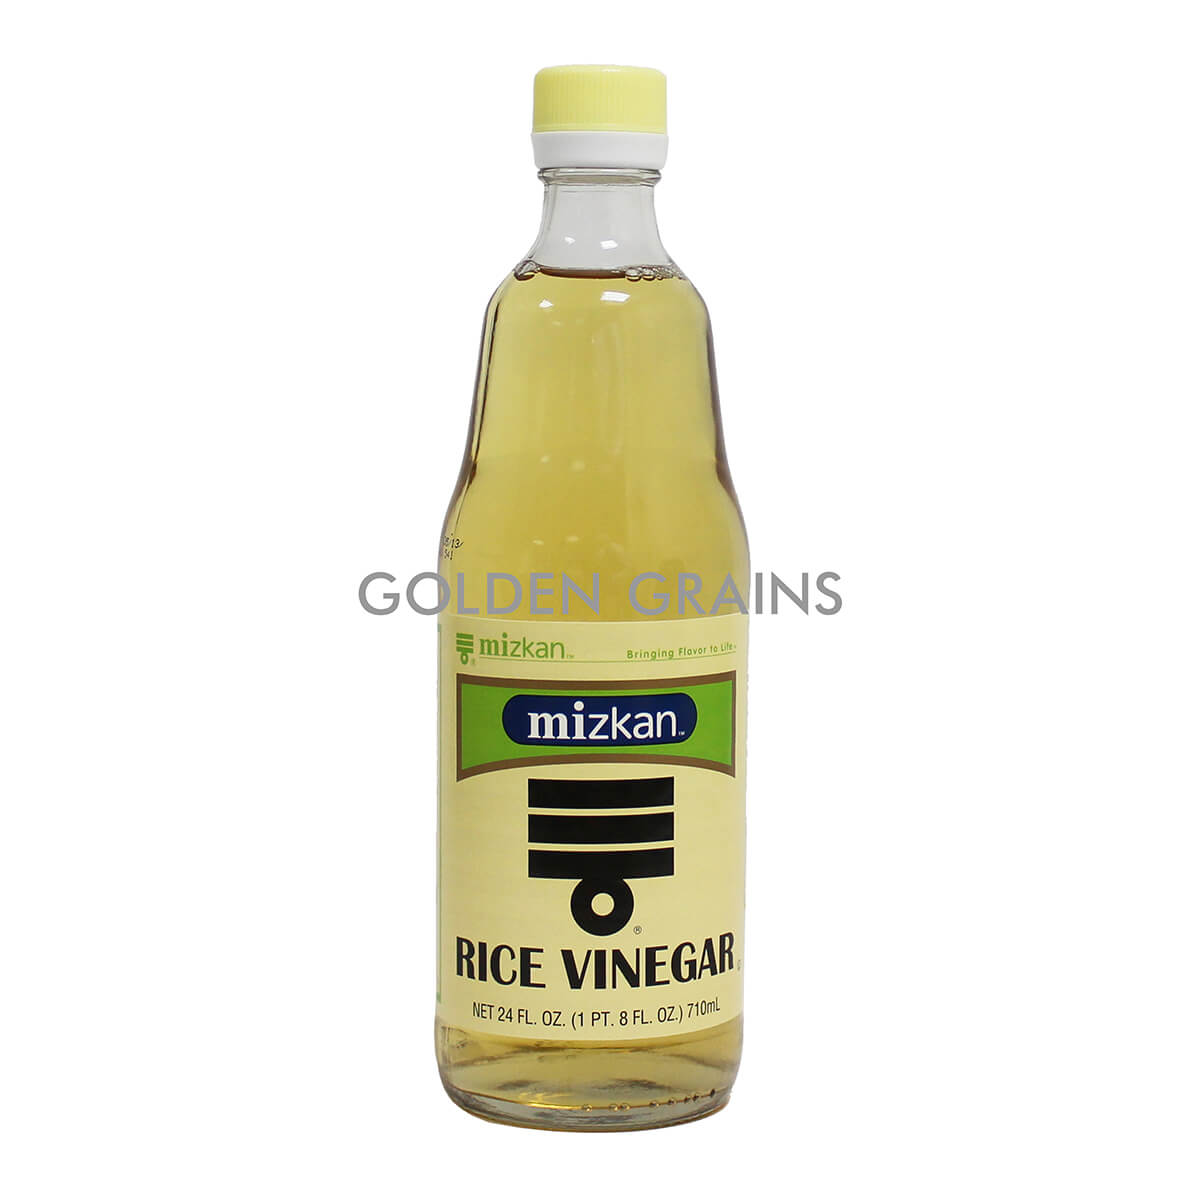 Golden Grains Mizukan - Japanese Rice Vinegar - 710ML - USA - Front.jpg